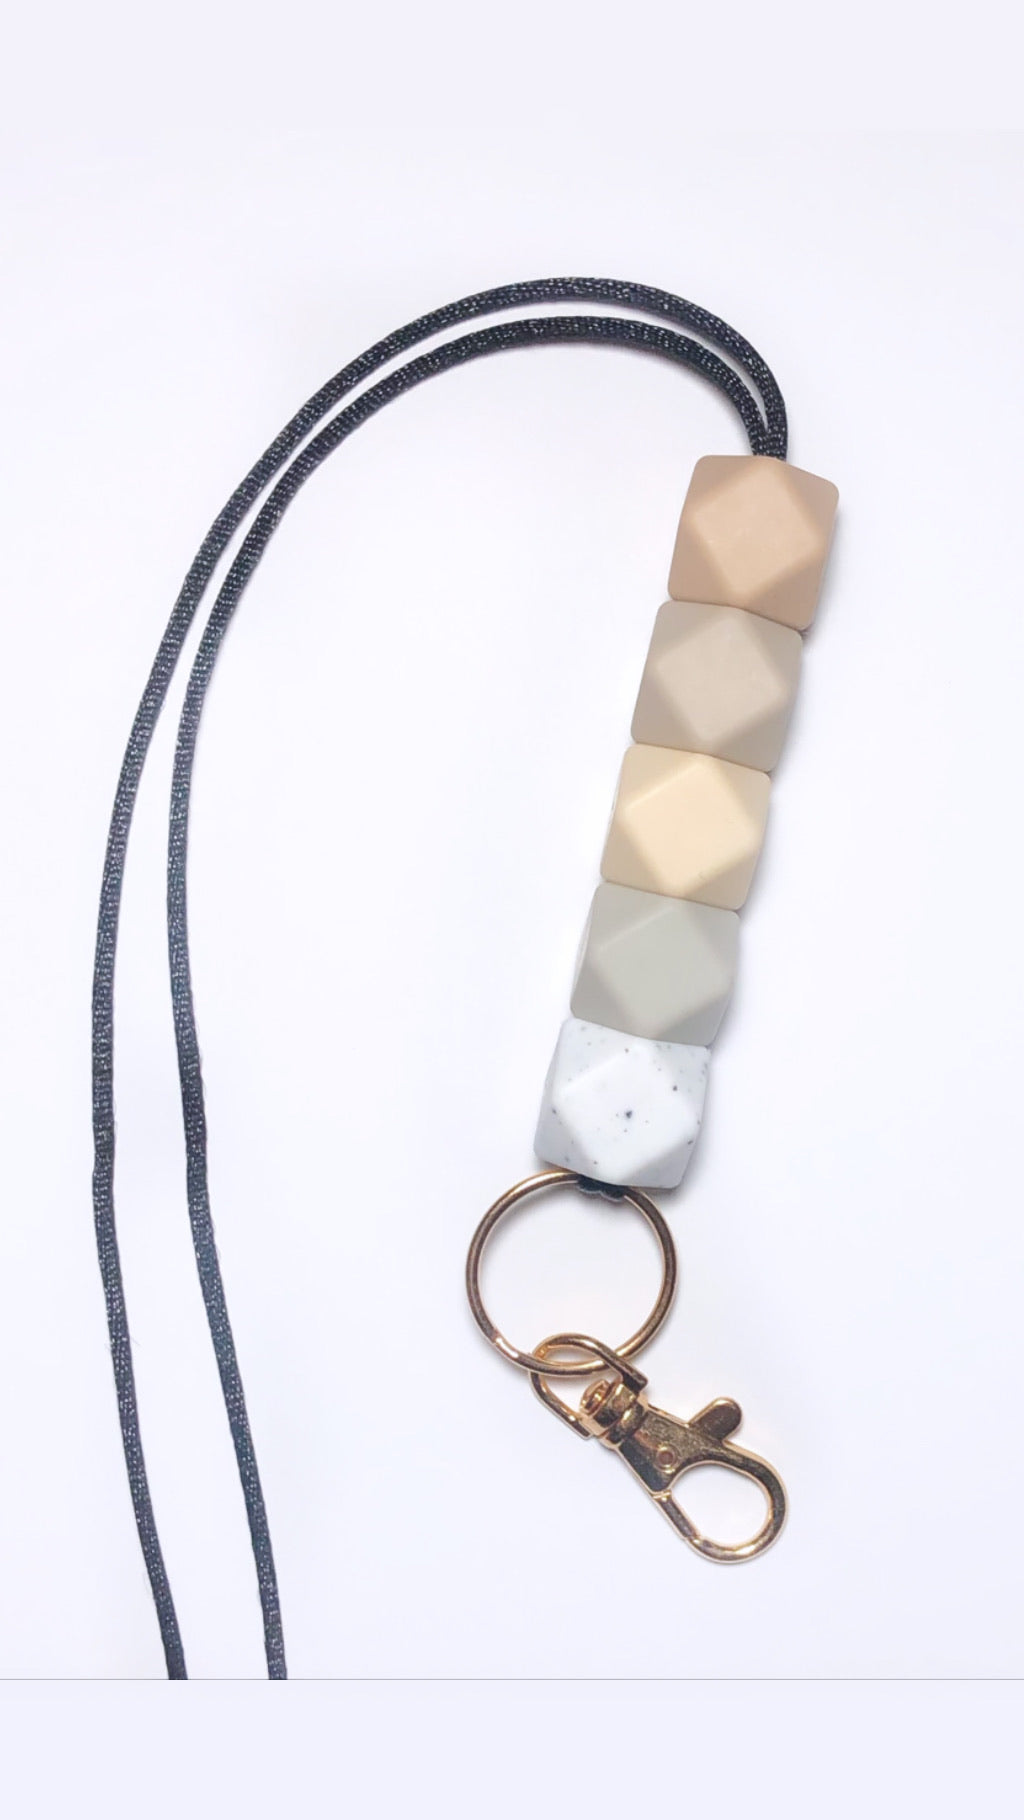 oatmeal, sandstone, beige, riverstone + speckled white lanyard